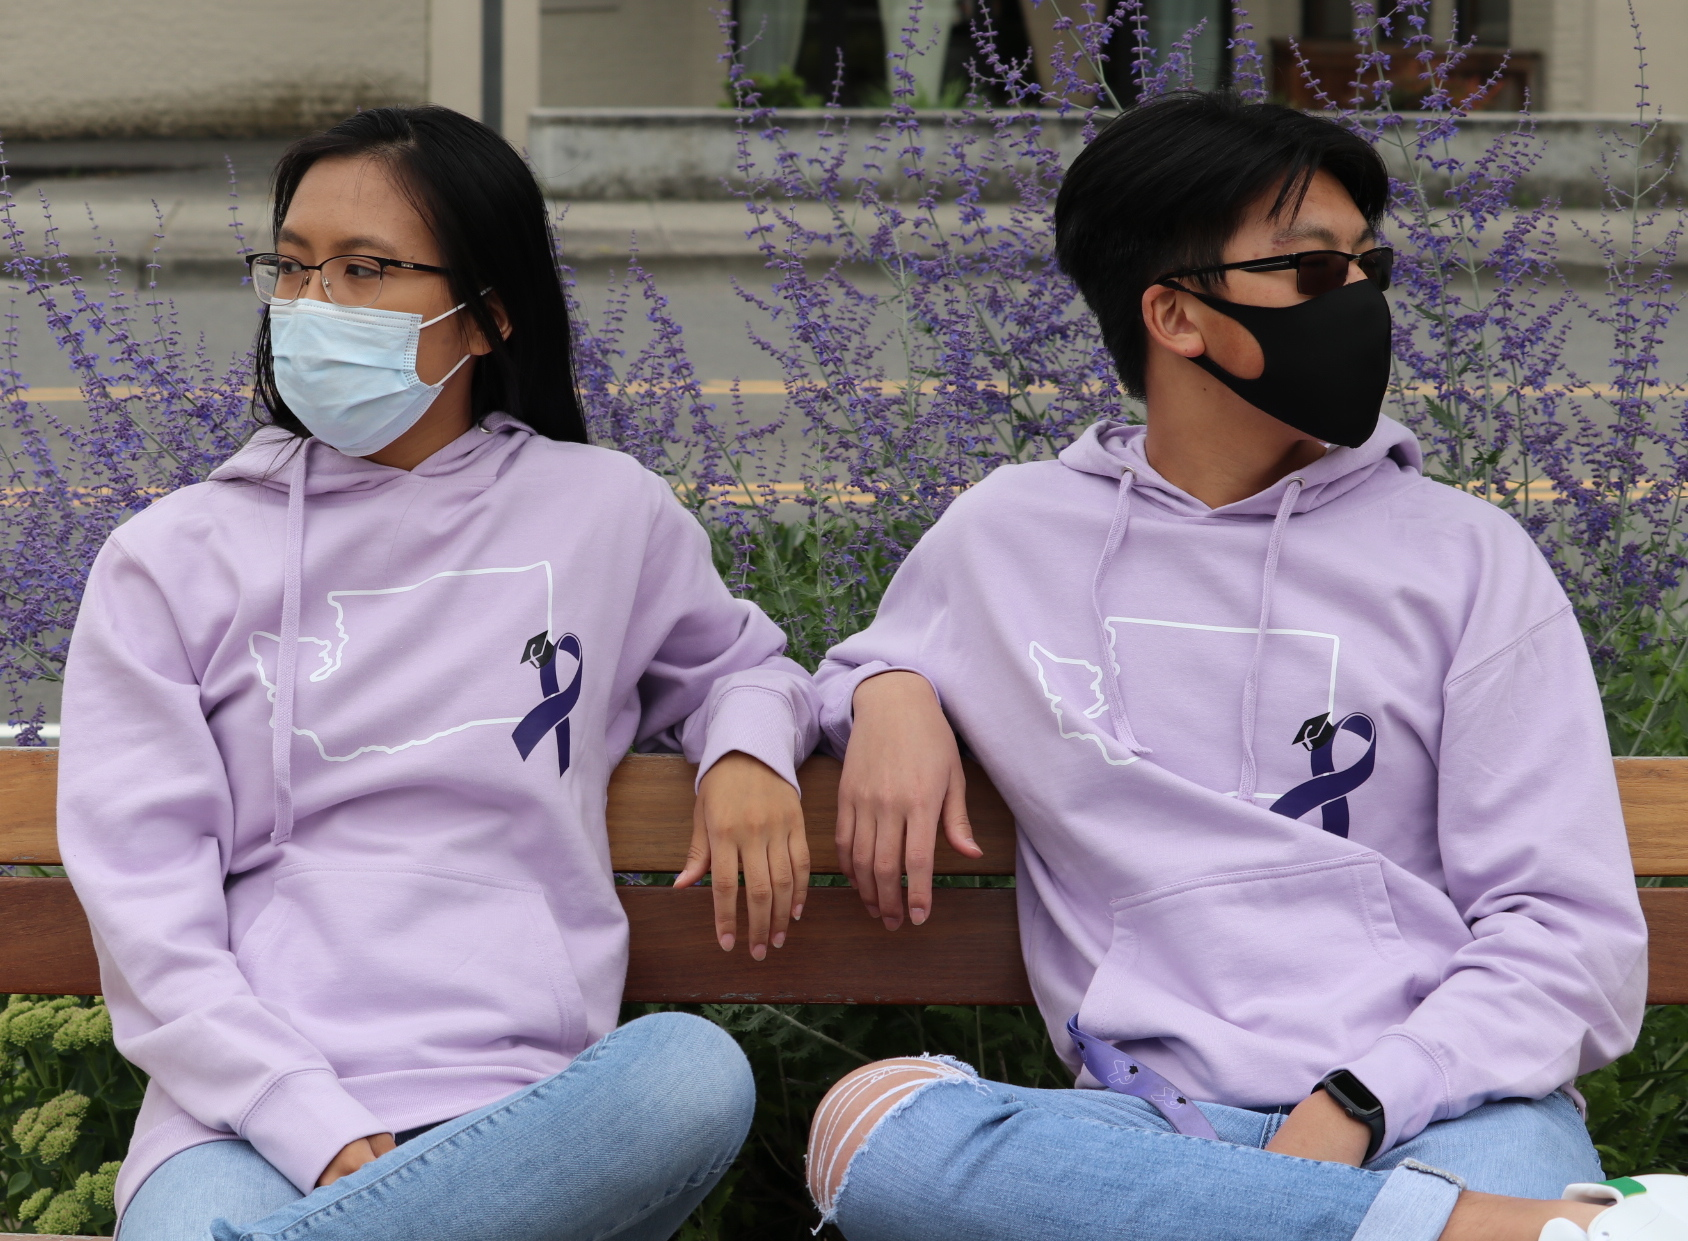 WASCAA Sweatshirts worn by students on bench